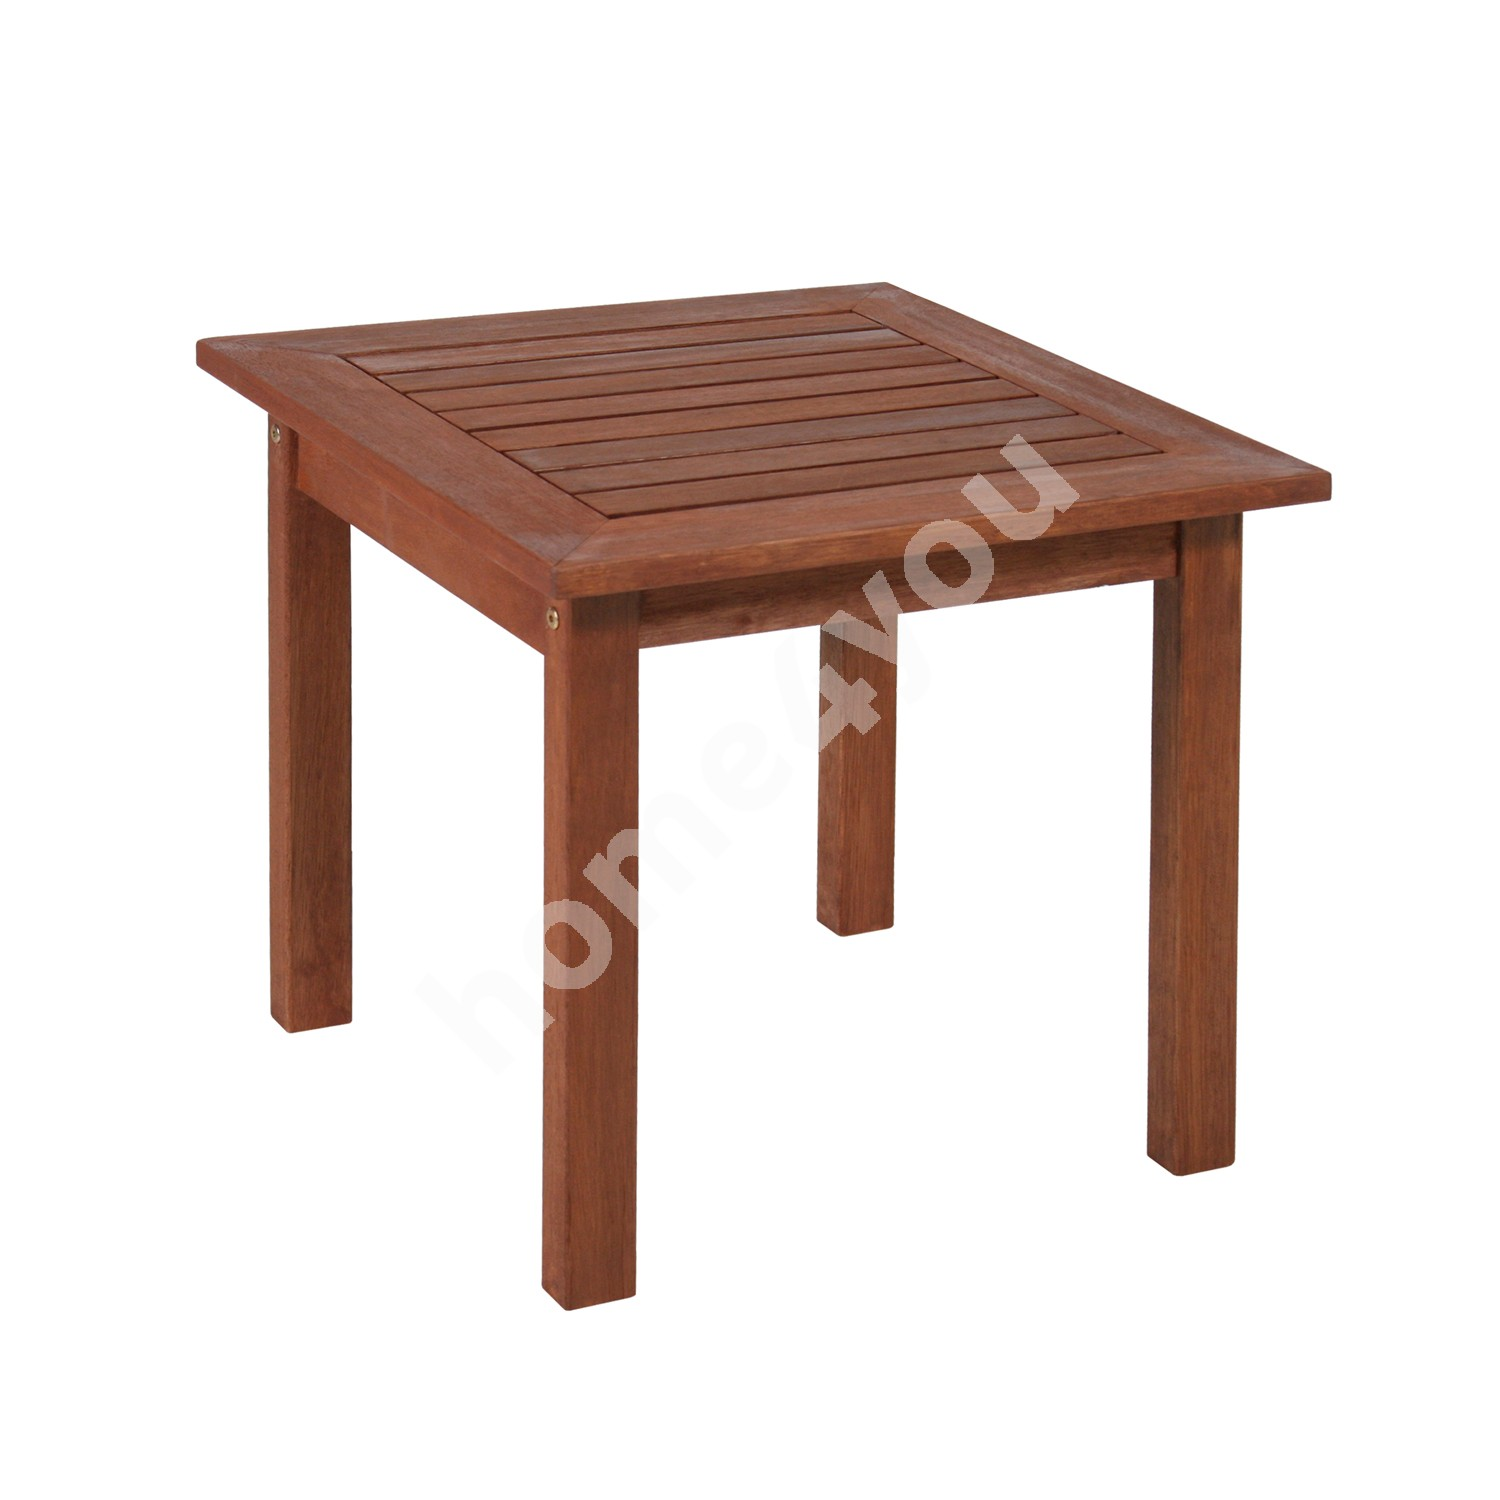 Side table BORDEAUX, 50x50xH50cm, wood: meranti, finishing: oiled